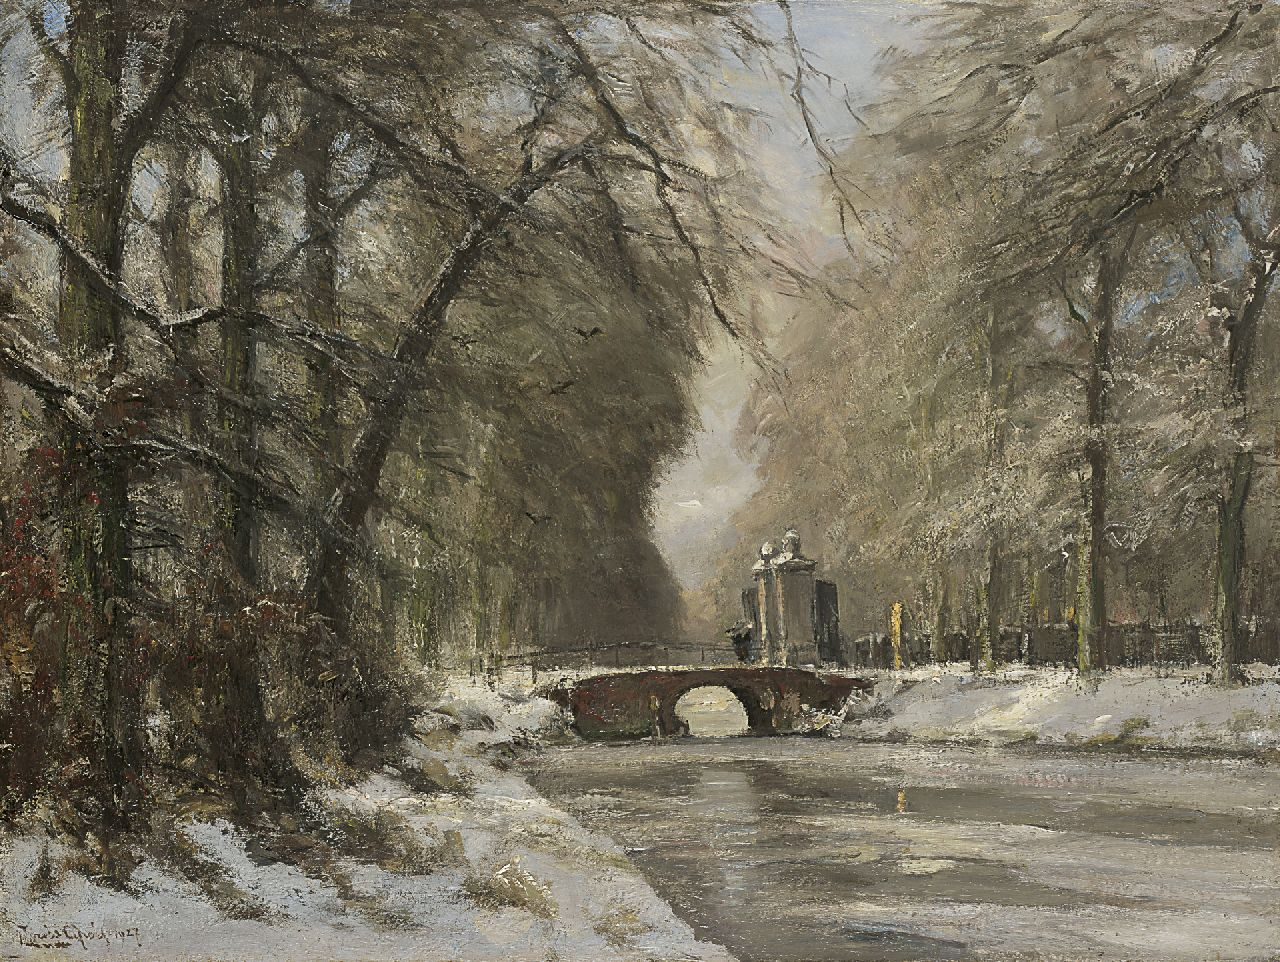 Apol L.F.H.  | Lodewijk Franciscus Hendrik 'Louis' Apol, The entrance of Huis ten Bosch in winter, oil on canvas 60.4 x 80.5 cm, signed l.l. and dated 1927